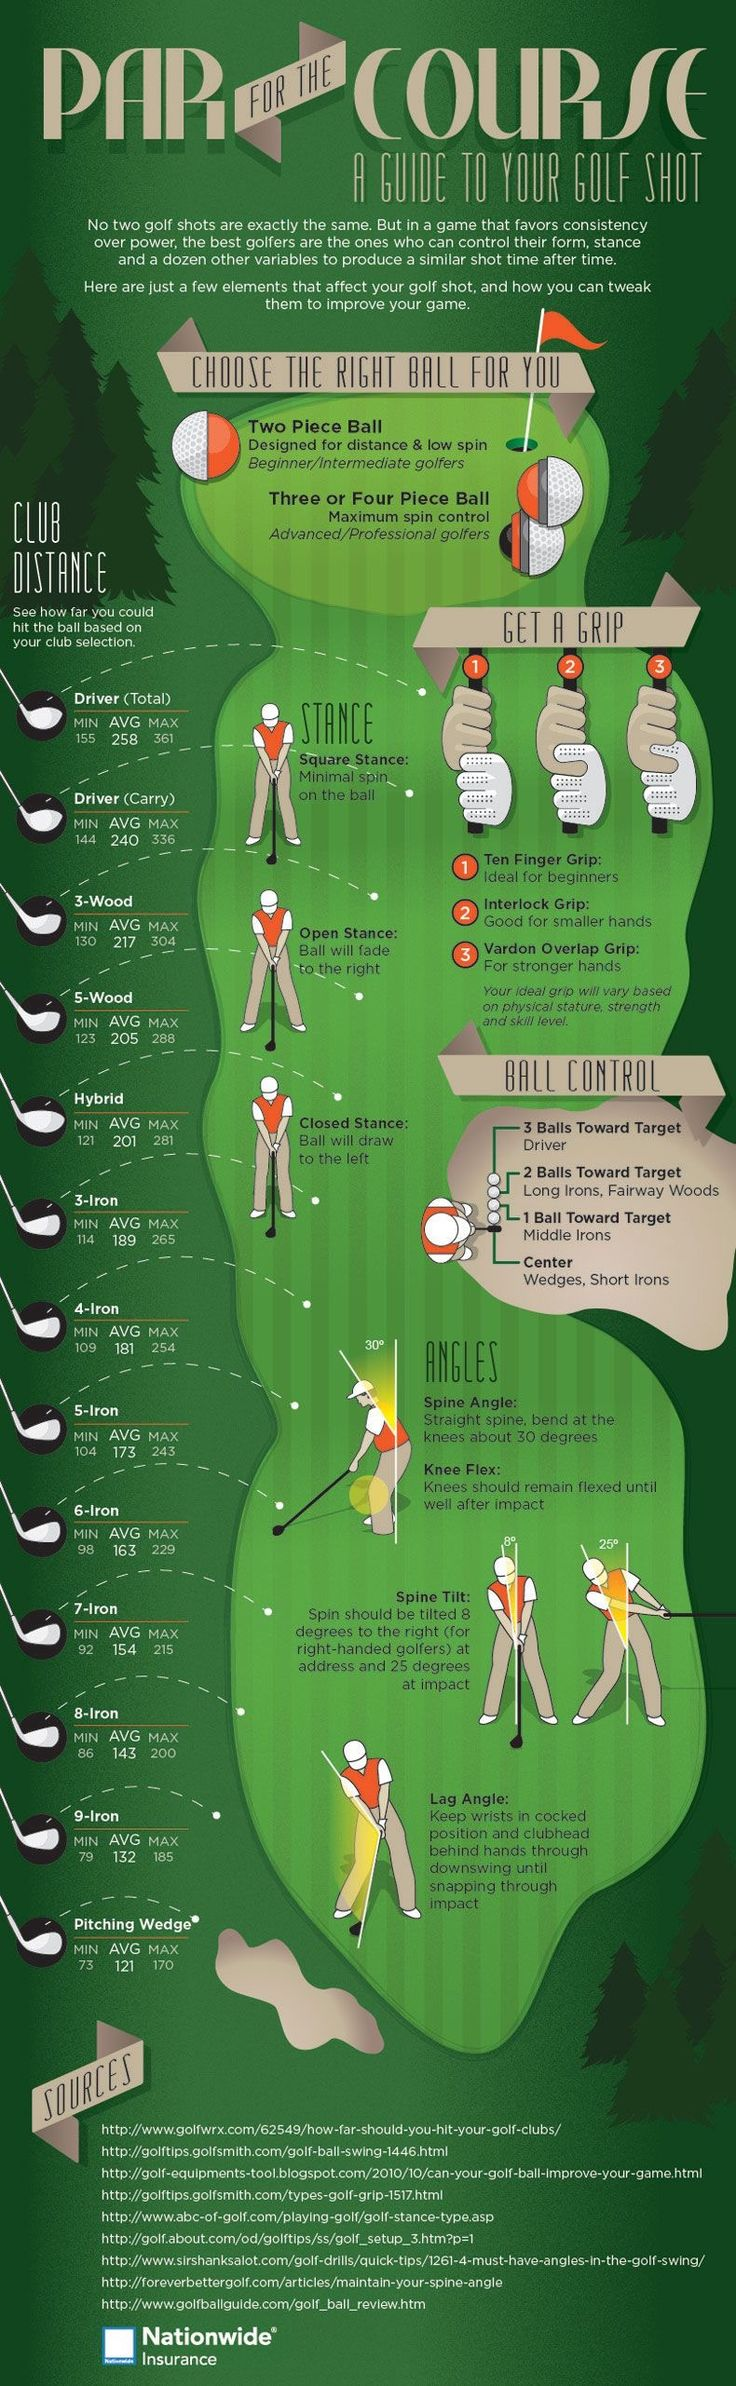 Golf practice makes perfect. A complete guide to golf stance, golf grip explained and what every golf club in the bag does.